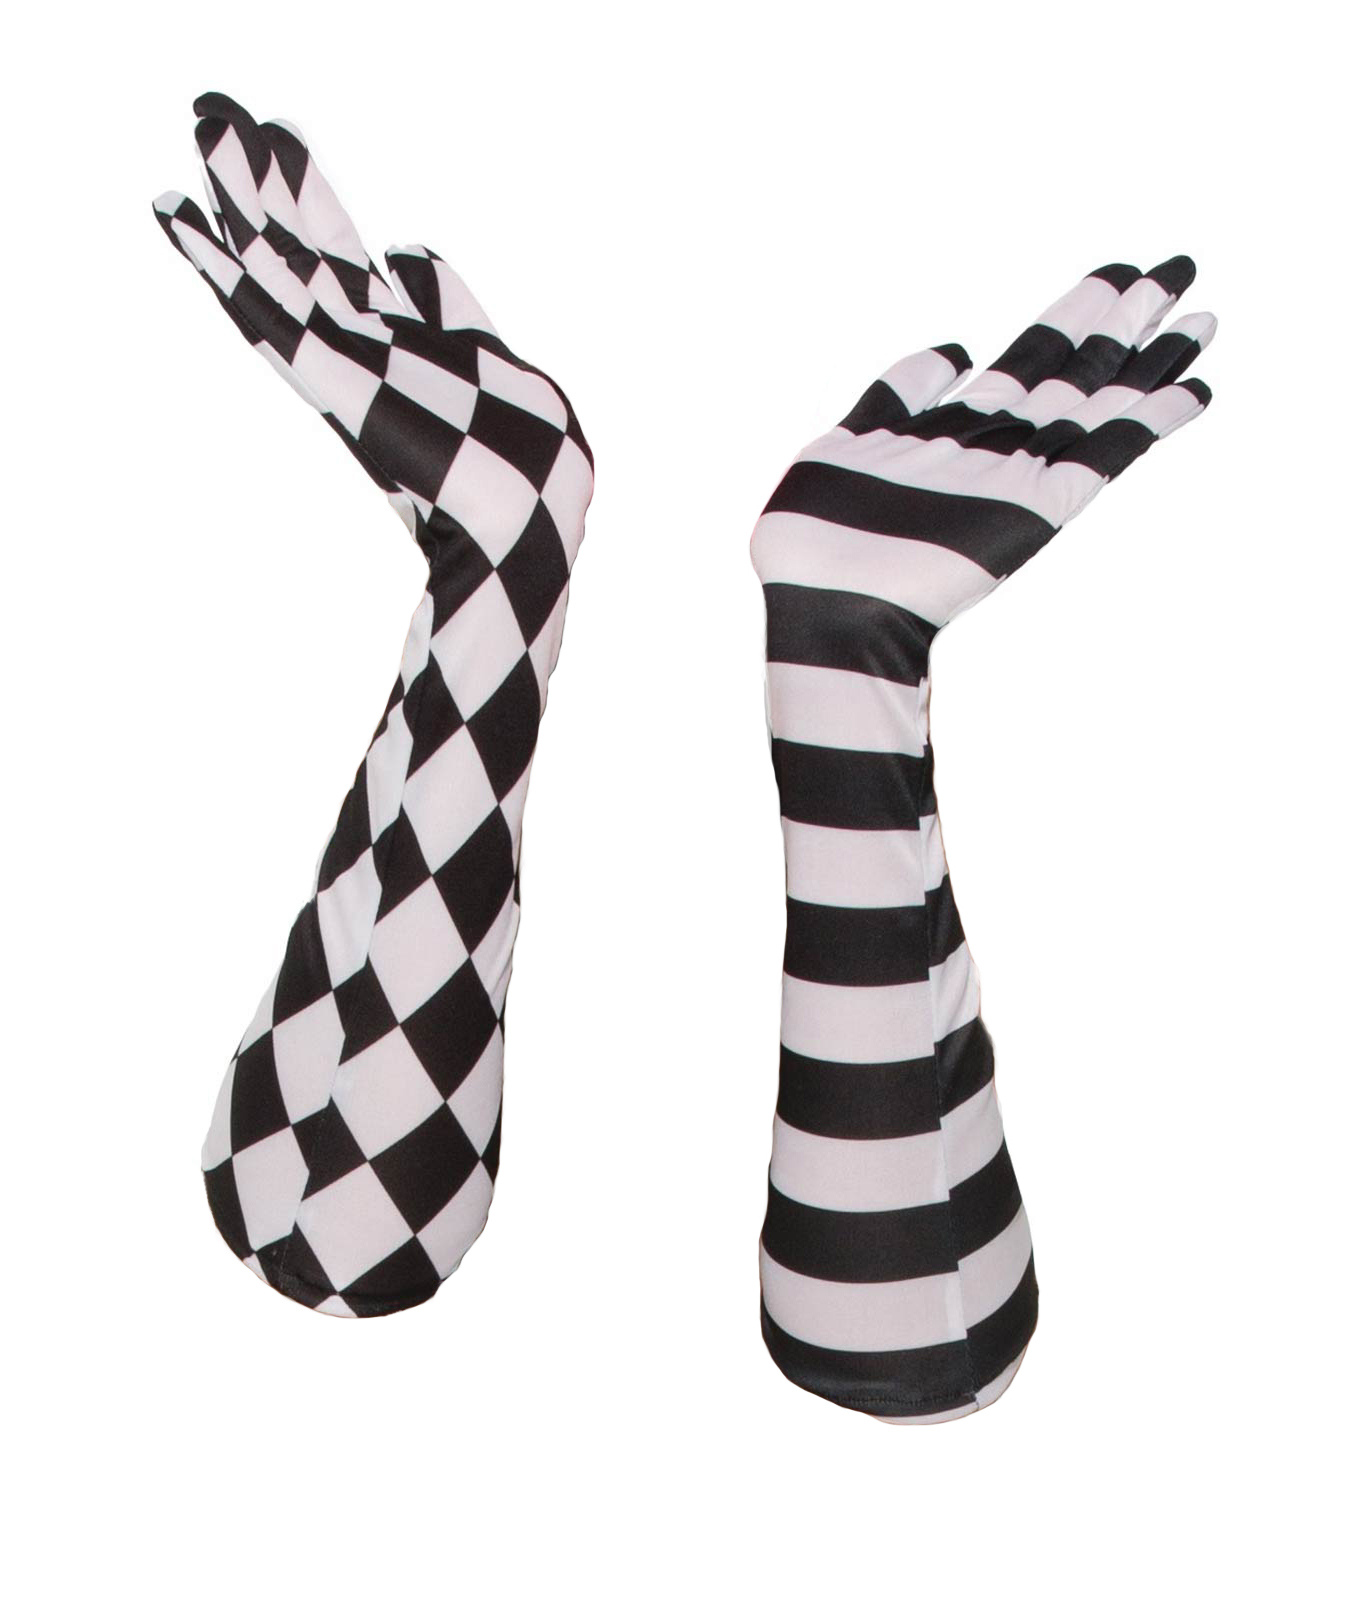 Harlequin Black White Circus Clown Long Elbow Opera Gloves Costume Accessory  sc 1 st  eBay & Harlequin Black White Circus Clown Long Elbow Opera Gloves Costume ...